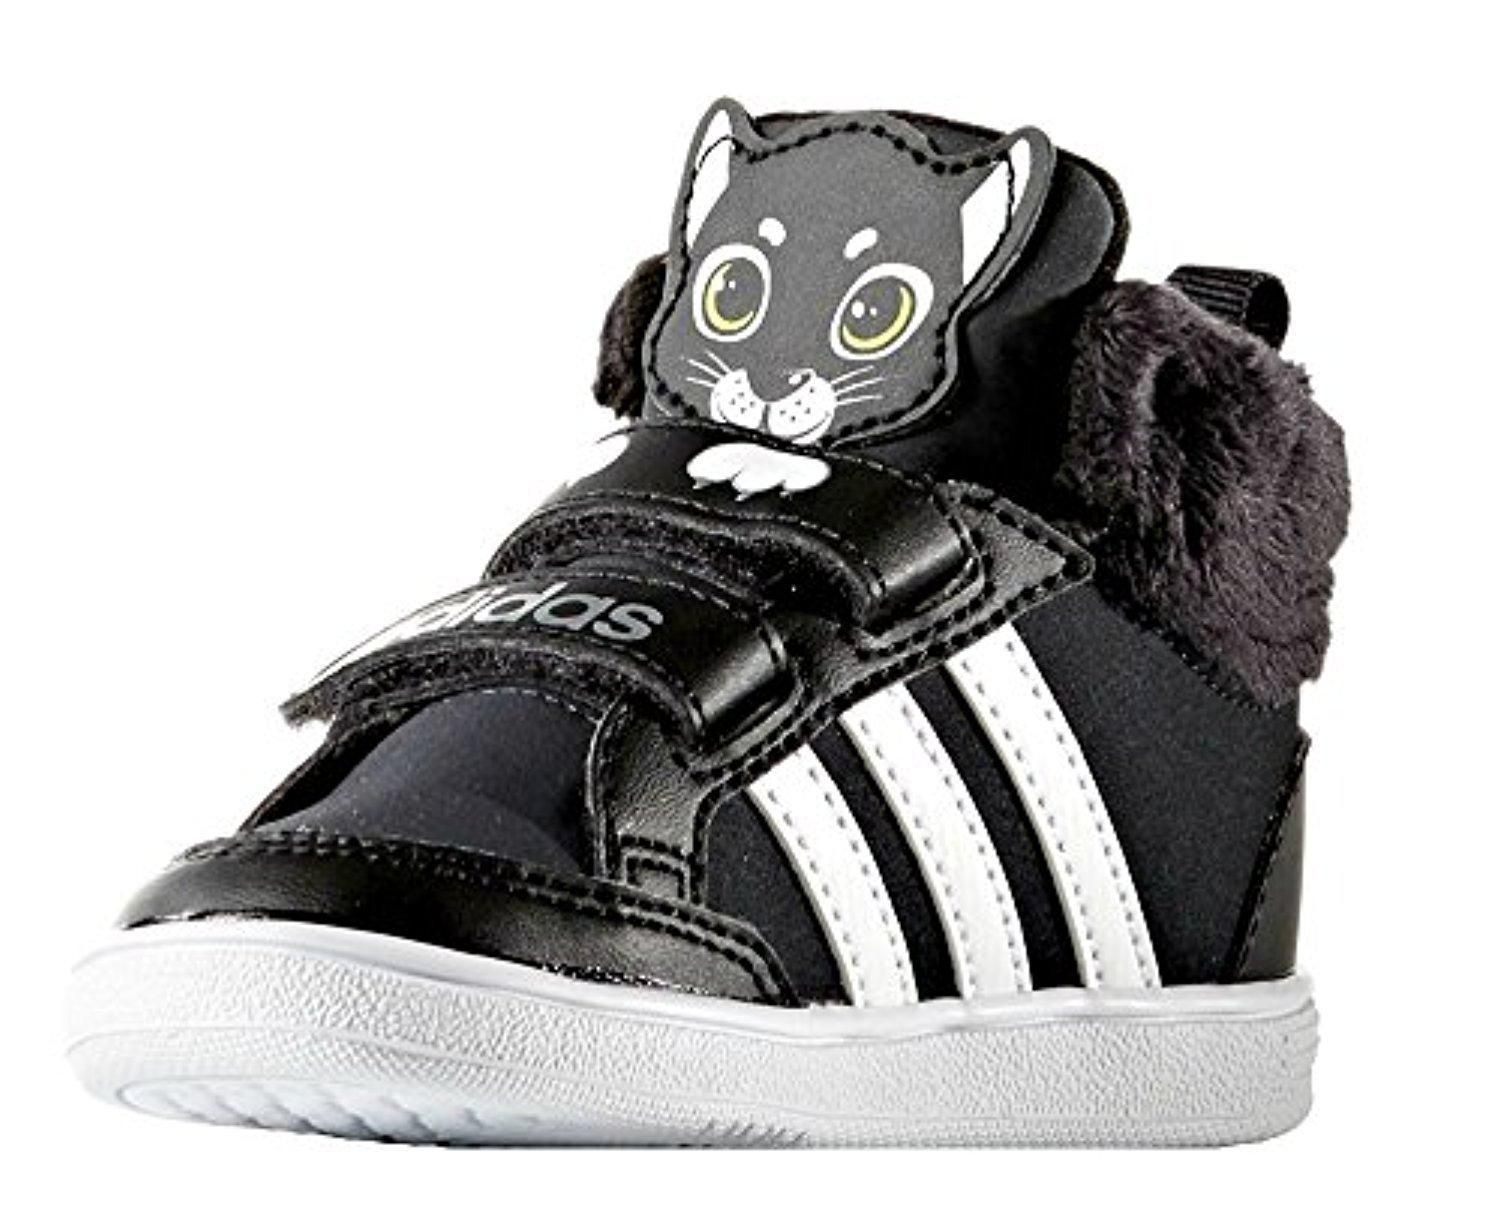 adidas neo hoops animal cmf